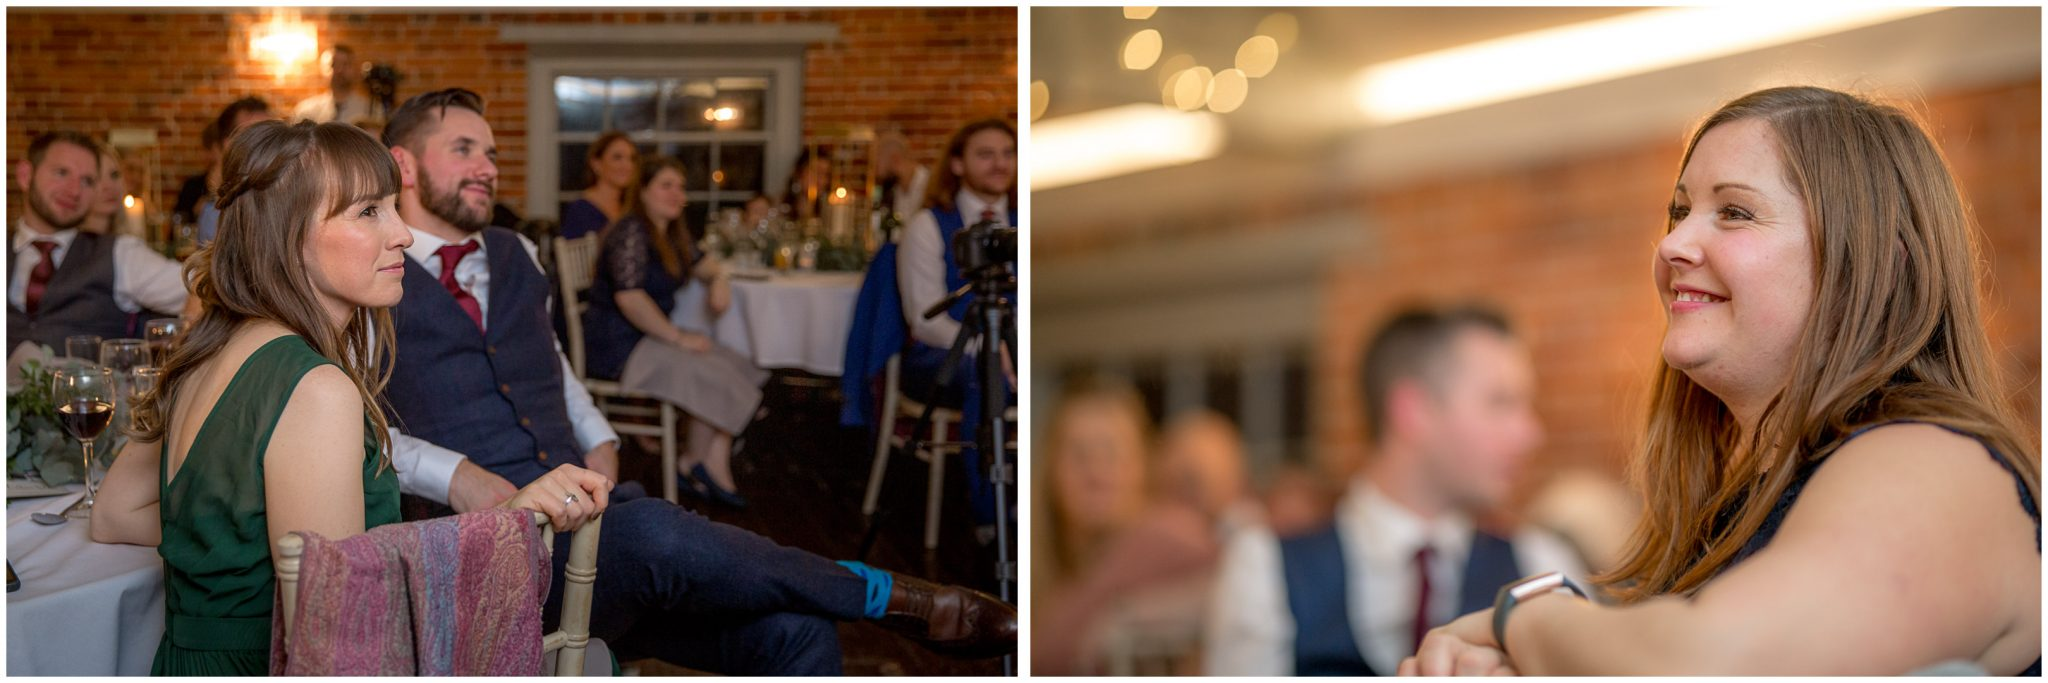 Candid photos of guests watching the speeches